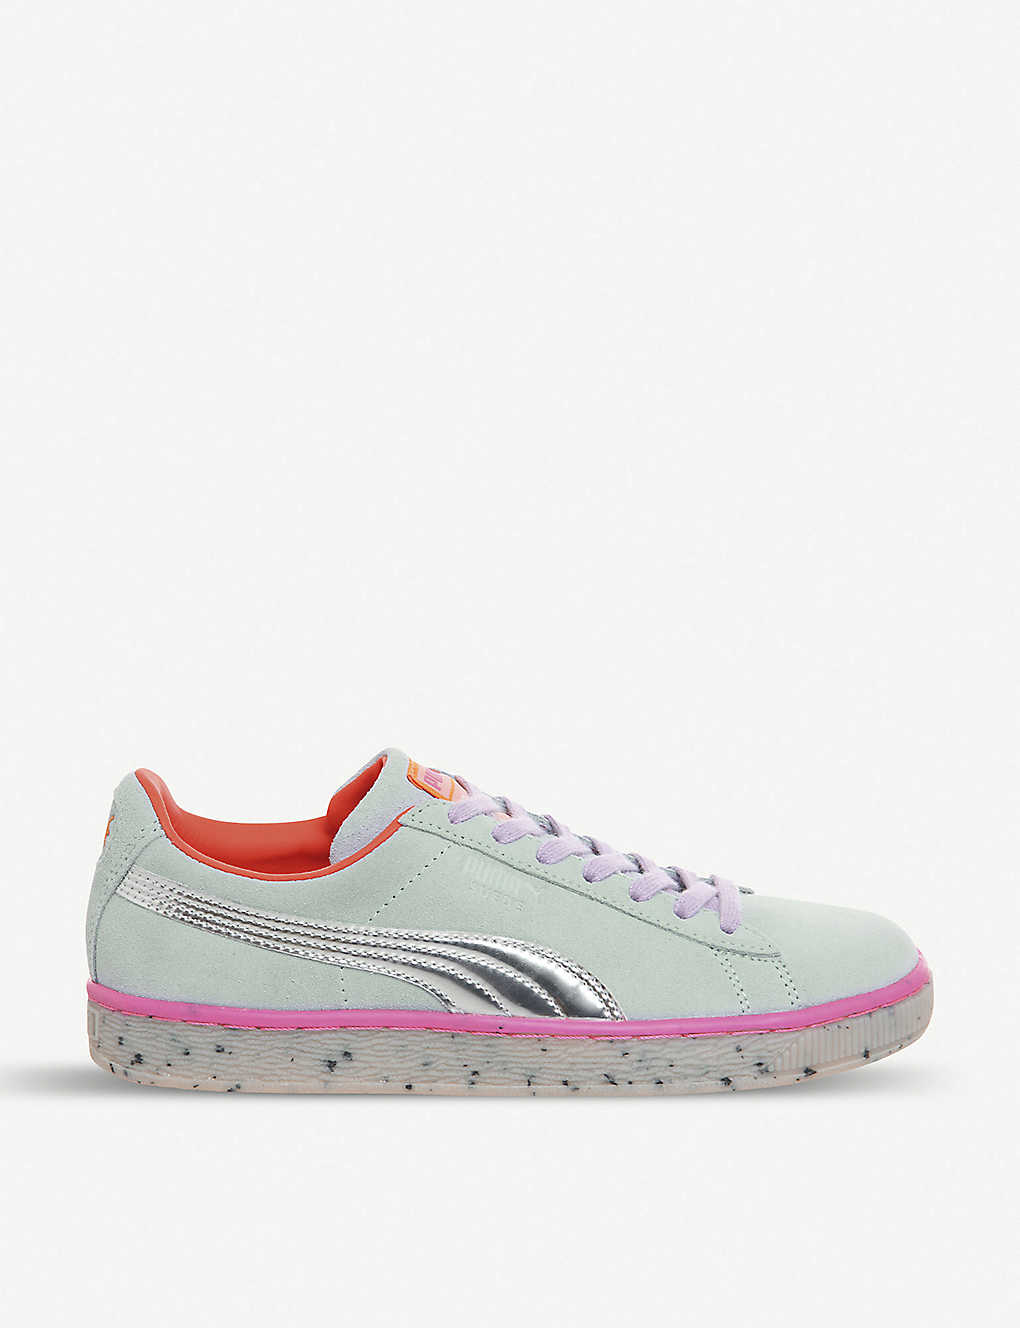 affd9d0c13c PUMA - Puma x Sophia Webster Candy Princess suede trainers ...